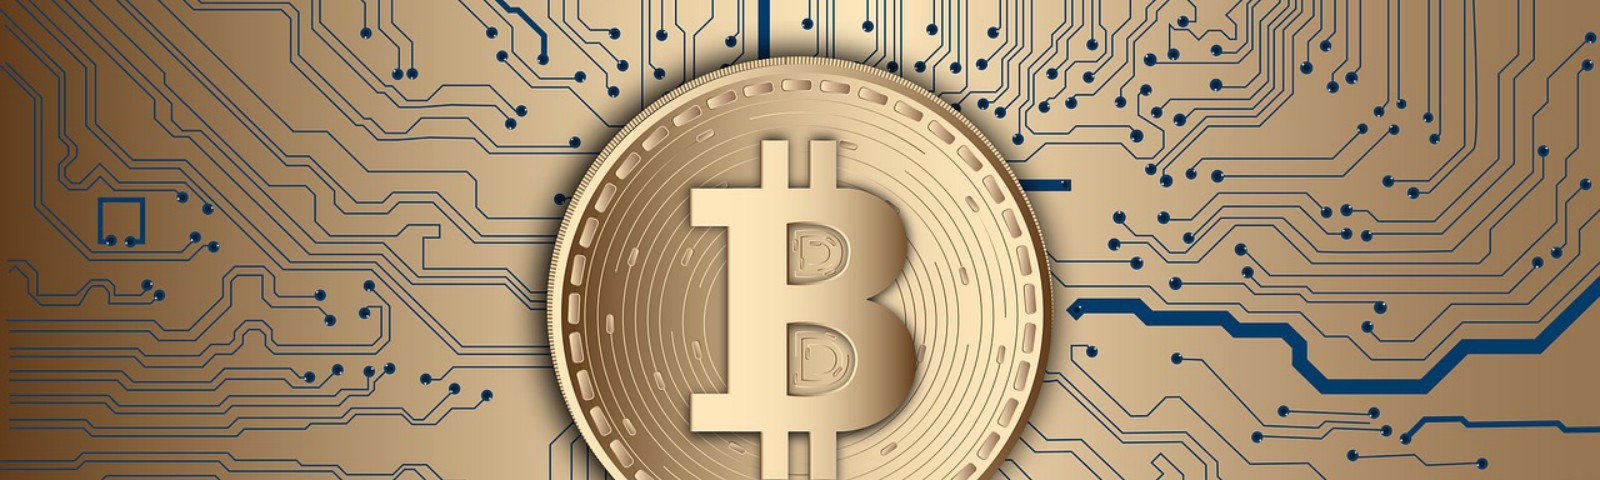 Bitcoin, the first cryptocurrency